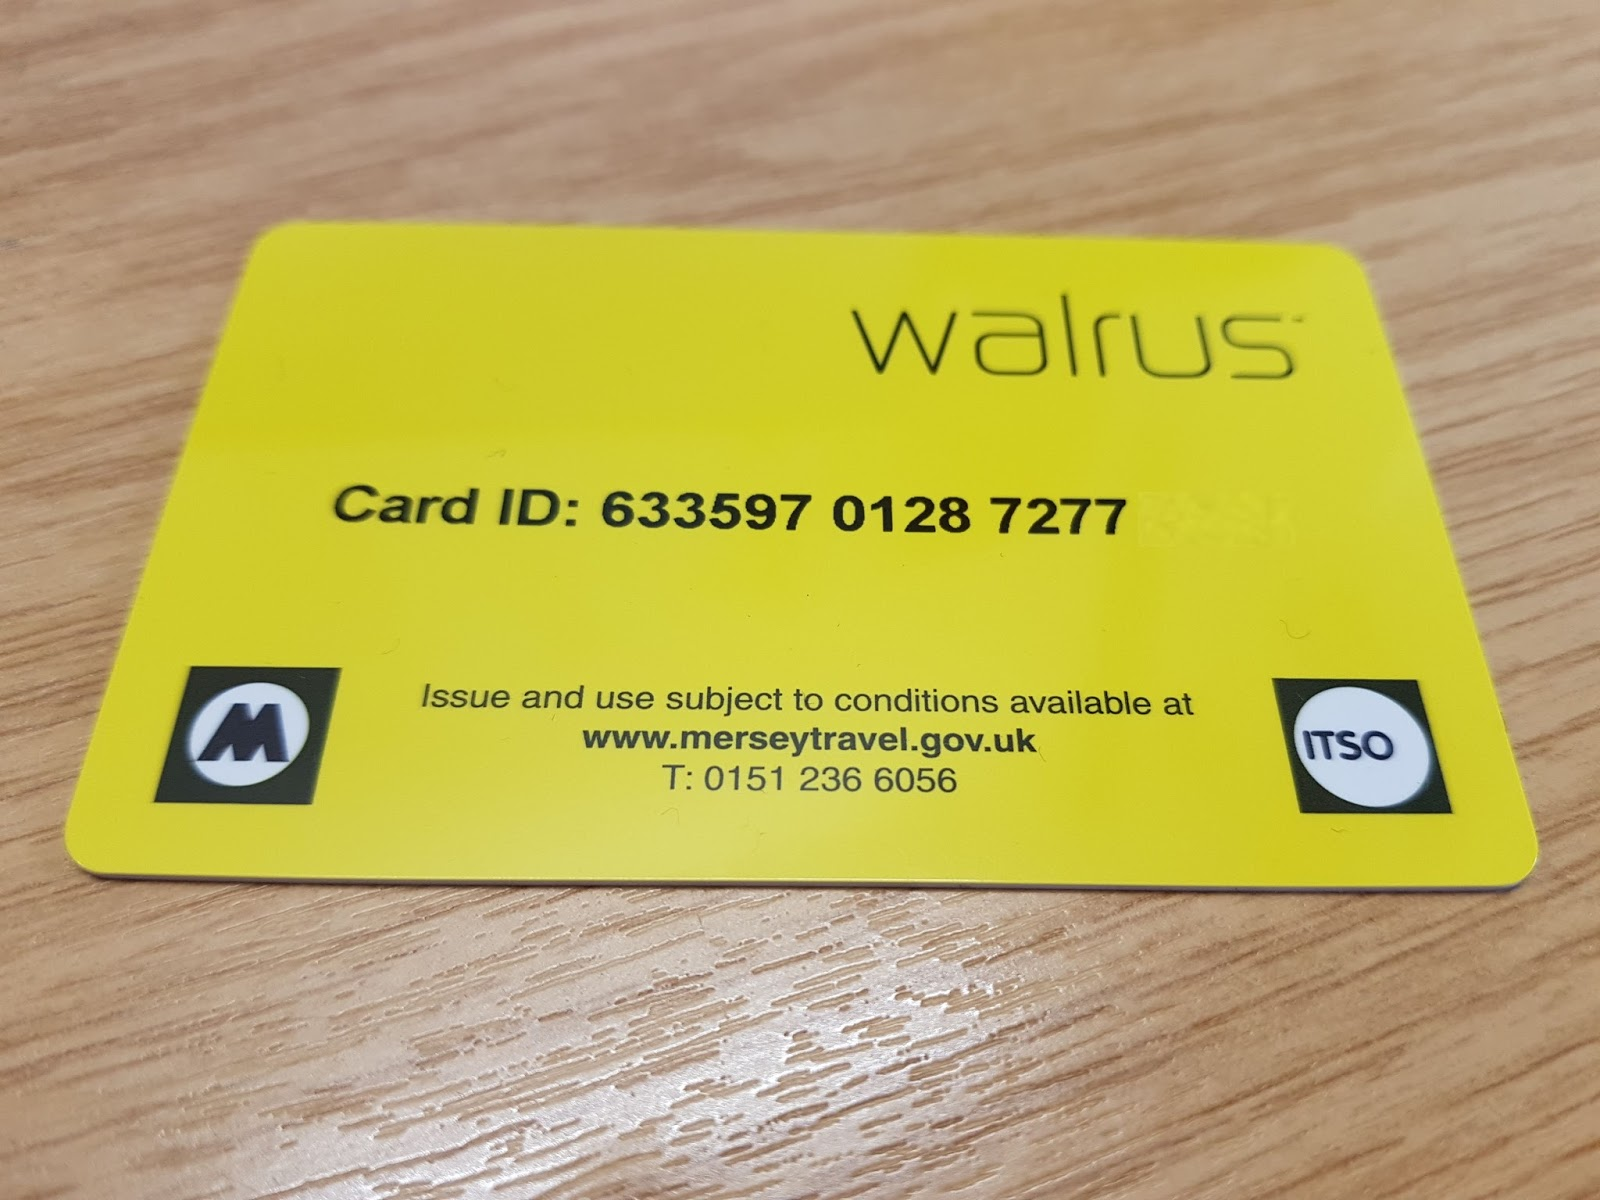 The other side of my Walrus card